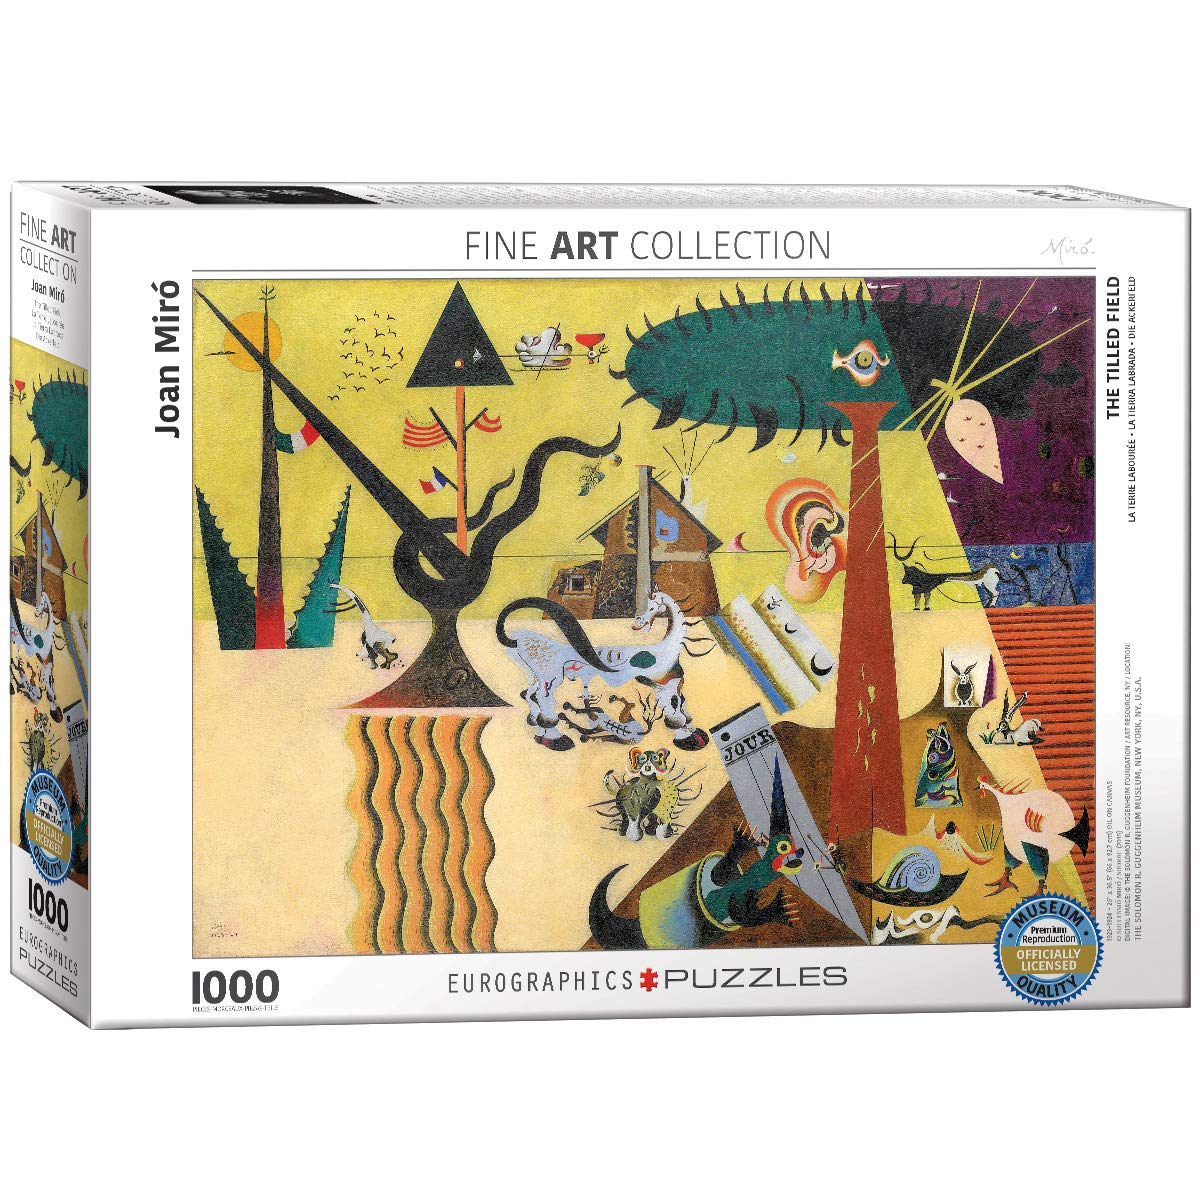 EuroGraphics The Tilled Field by Joan Miró 1000Piece Puzzle